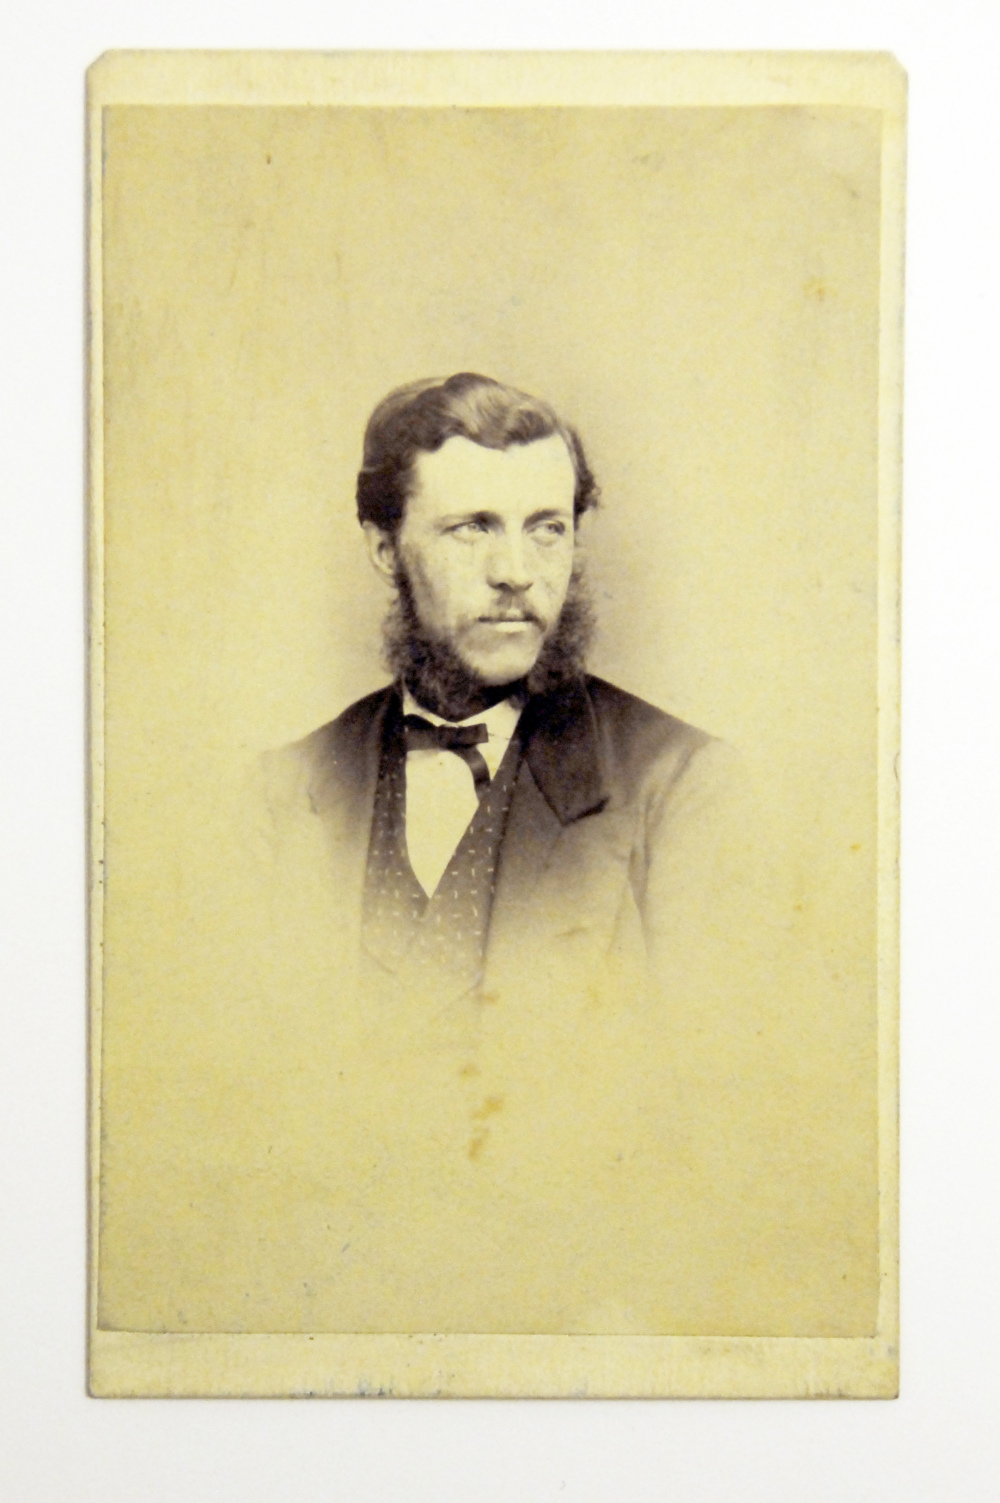 preview image for Photograph (Albumen Print, Carte de Visite) of Richard Inwards, by Carlos Fox, July 2, 1870